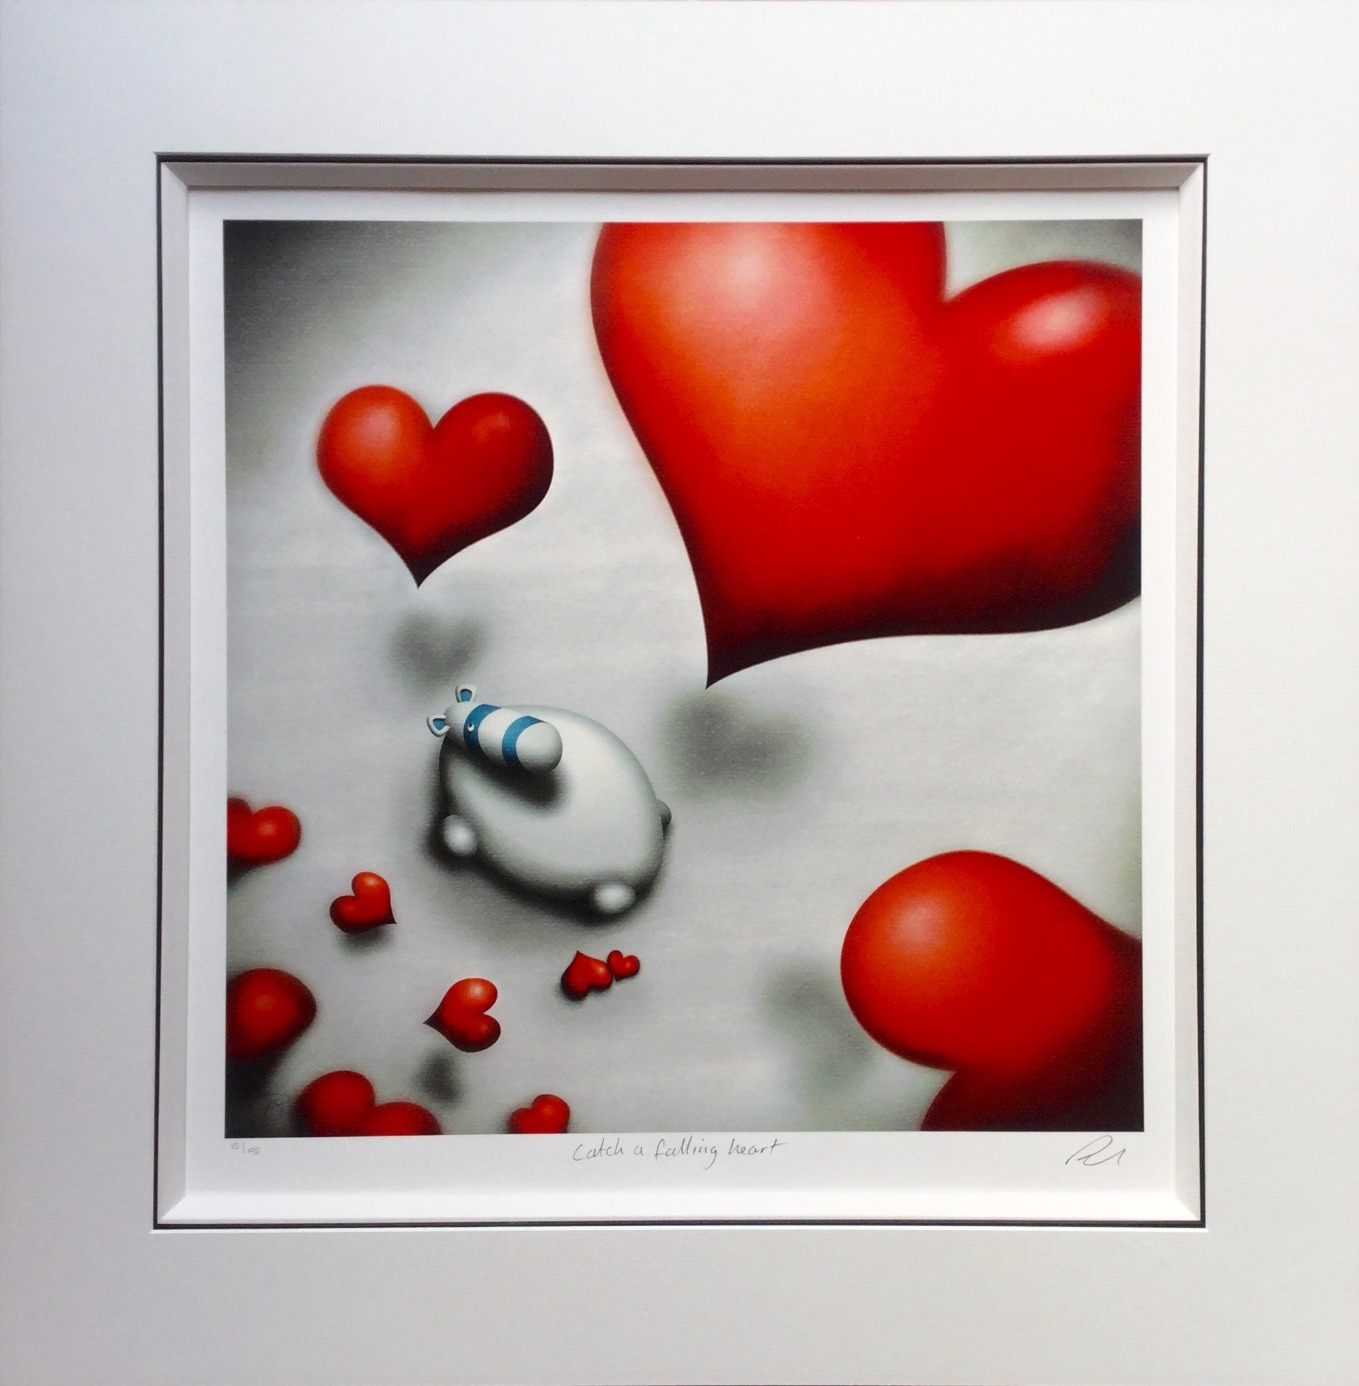 Catch a Falling Heart by Peter Smith, Love | Couple | Romance | Customer Sale